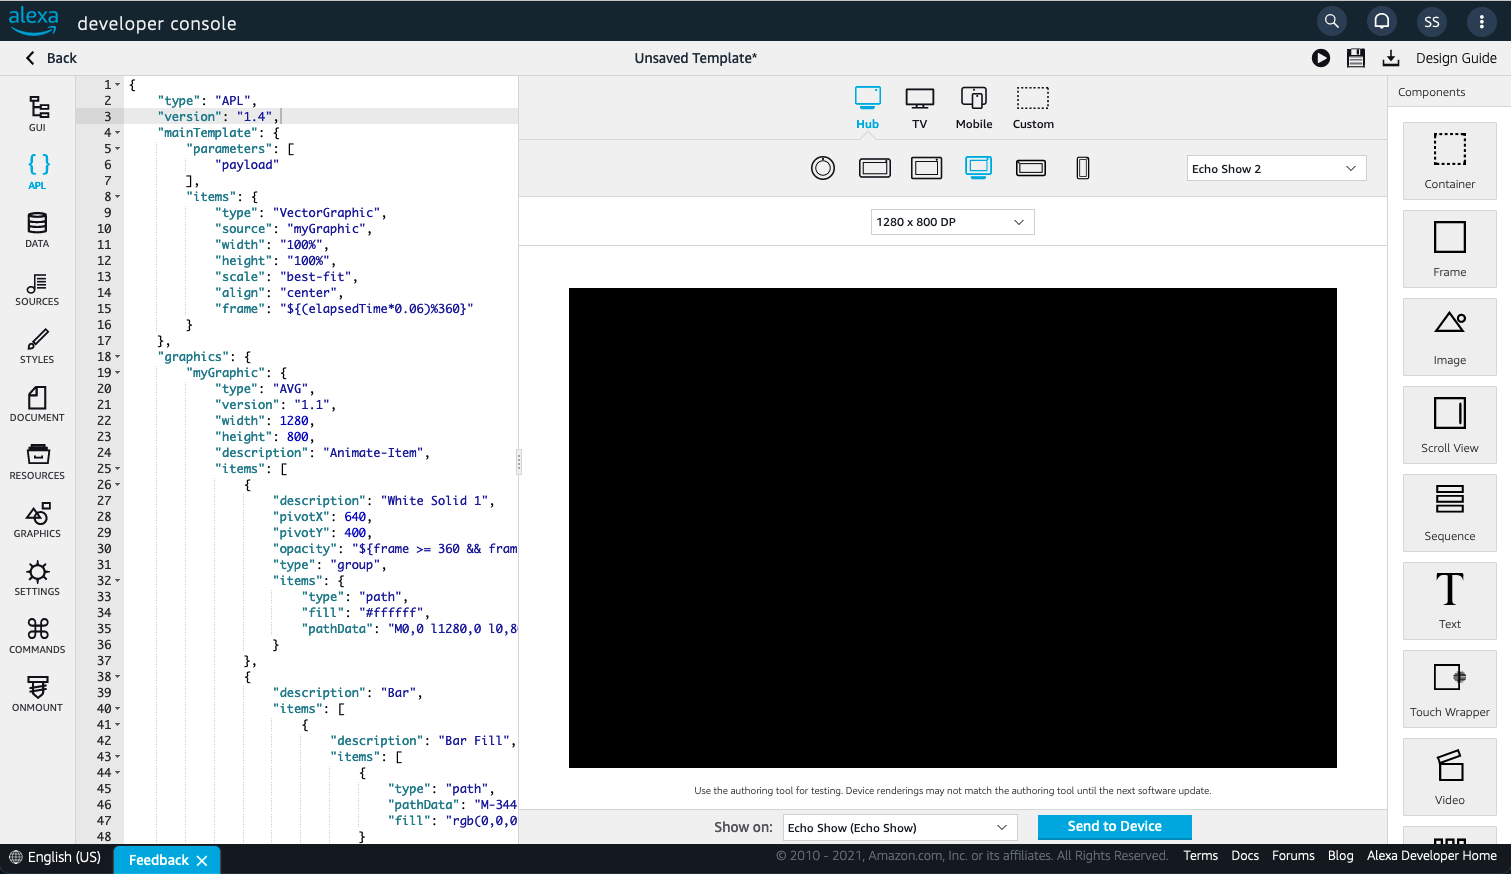 Unexpected blank screen after a successful conversion